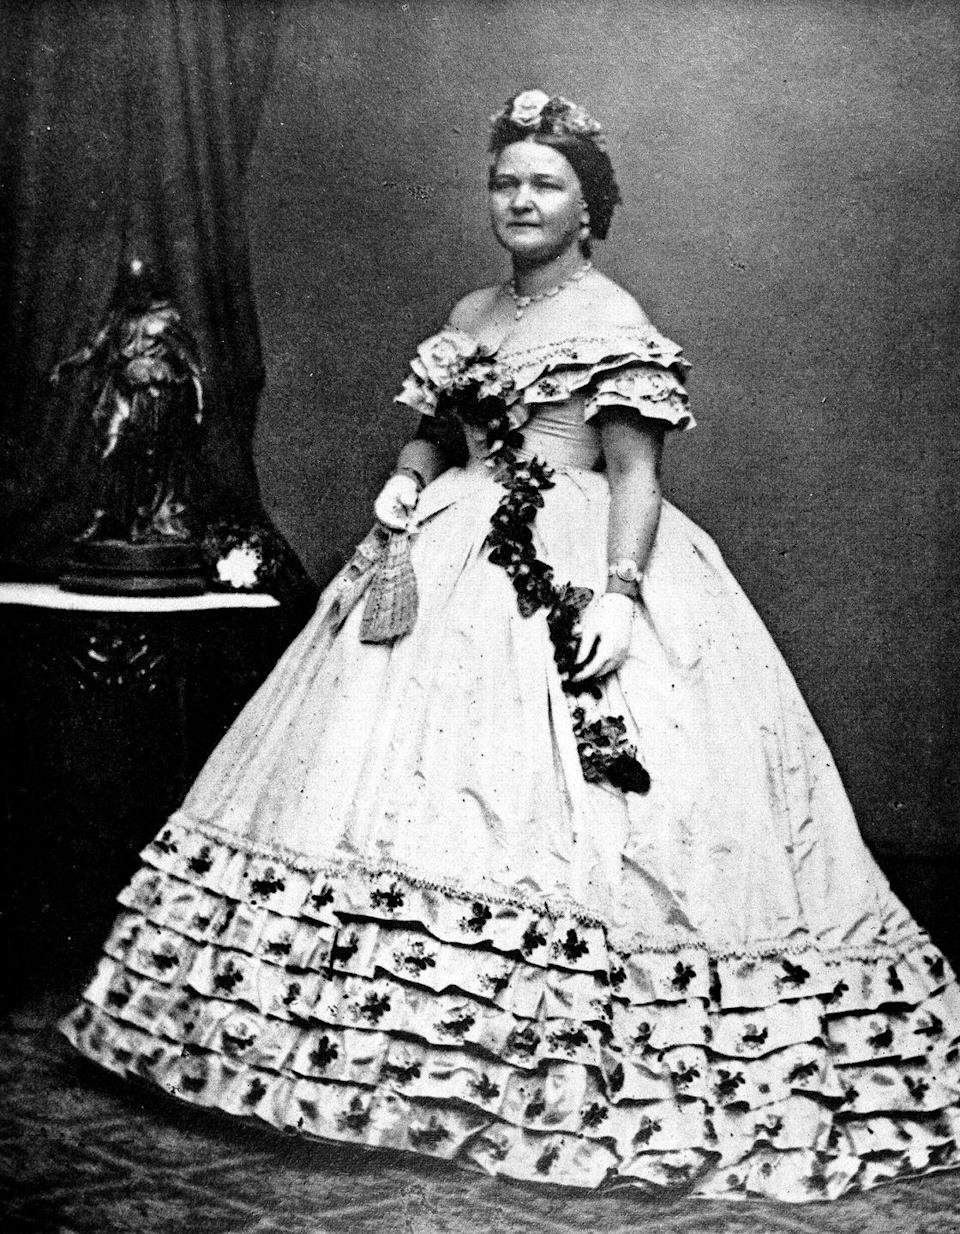 "<p>1861 ball gowns, but make it fashun. Abraham Lincoln's wife, Mary Todd, was often criticized by the public for her ball gown purchases during the Civil War, which would <span class=""redactor-unlink"">cost upward of $2,000</span> (yes, that is <em>a lot</em> for the time period). Lincoln would defend her by <a href=""http://style.time.com/2013/02/18/our-fair-ladies-the-14-most-fashionable-first-ladies/slide/mary-lincoln/"" rel=""nofollow noopener"" target=""_blank"" data-ylk=""slk:stating"" class=""link rapid-noclick-resp"">stating</a>, ""The President glances at my rich dresses and is happy to believe that the few hundred dollars that I obtain from him supply all my wants."" Same. </p>"